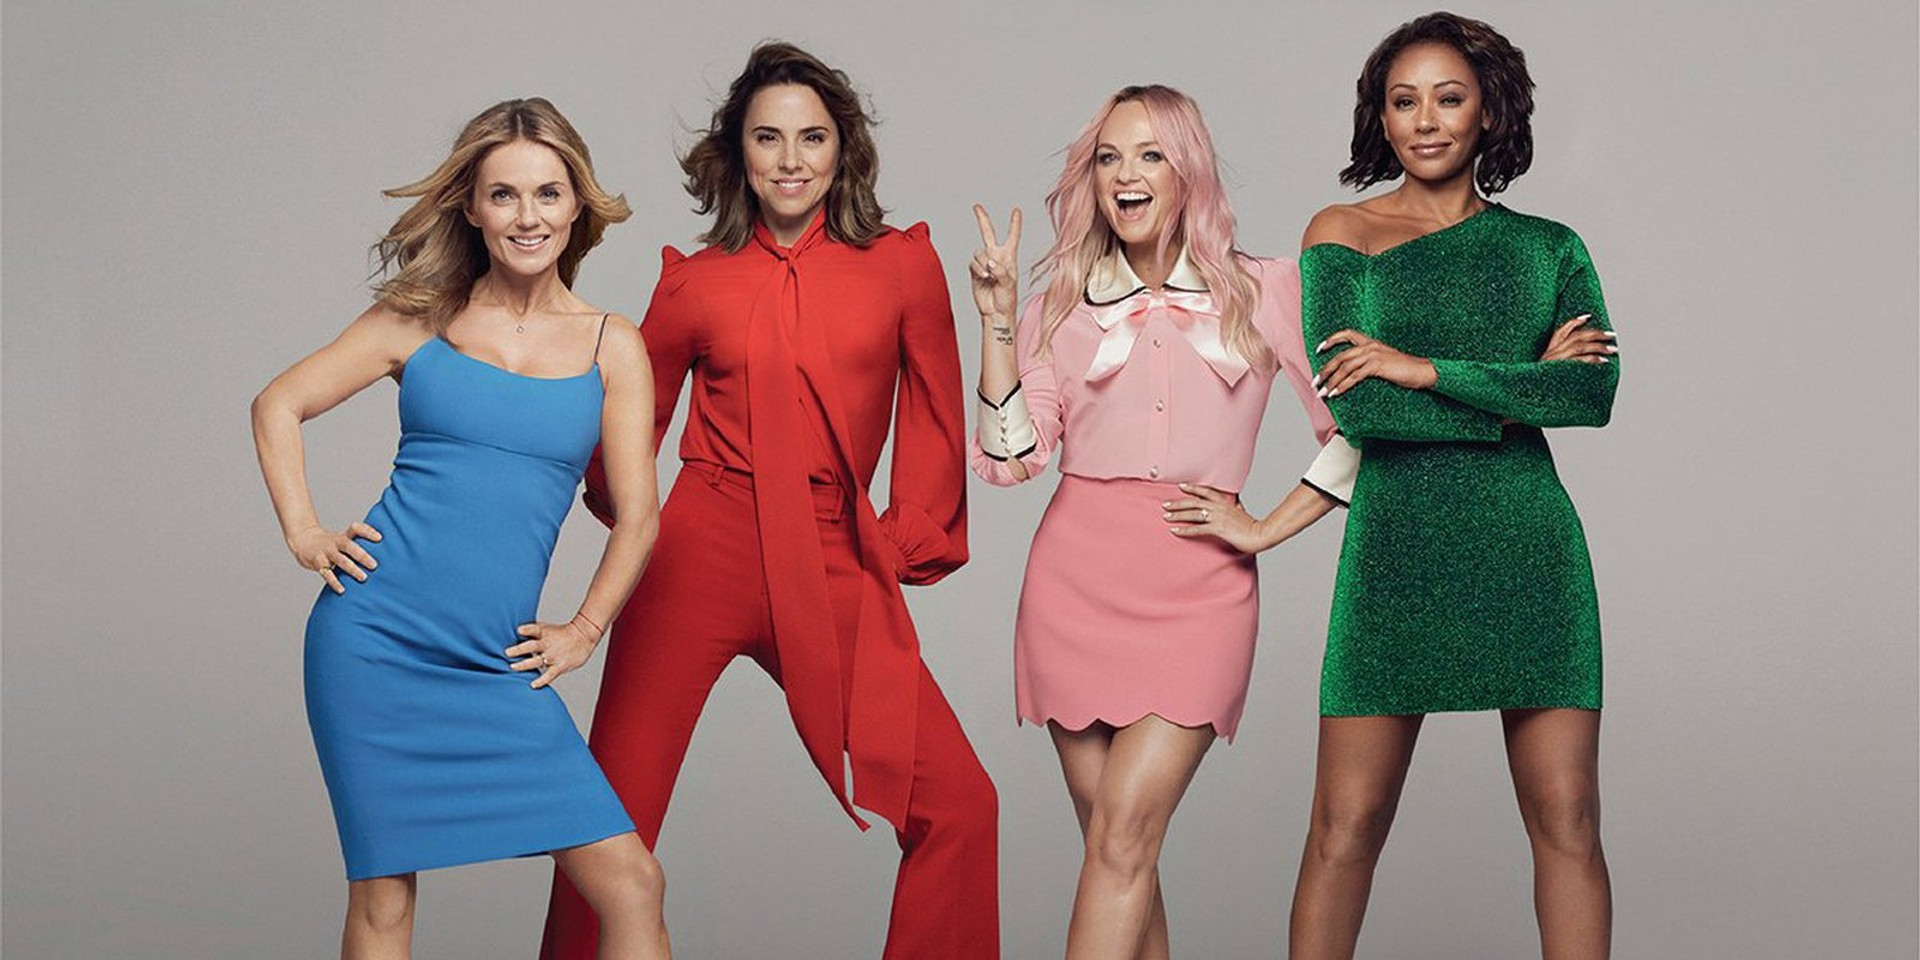 Spice Girls to relaunch iconic music videos in 4K resolution